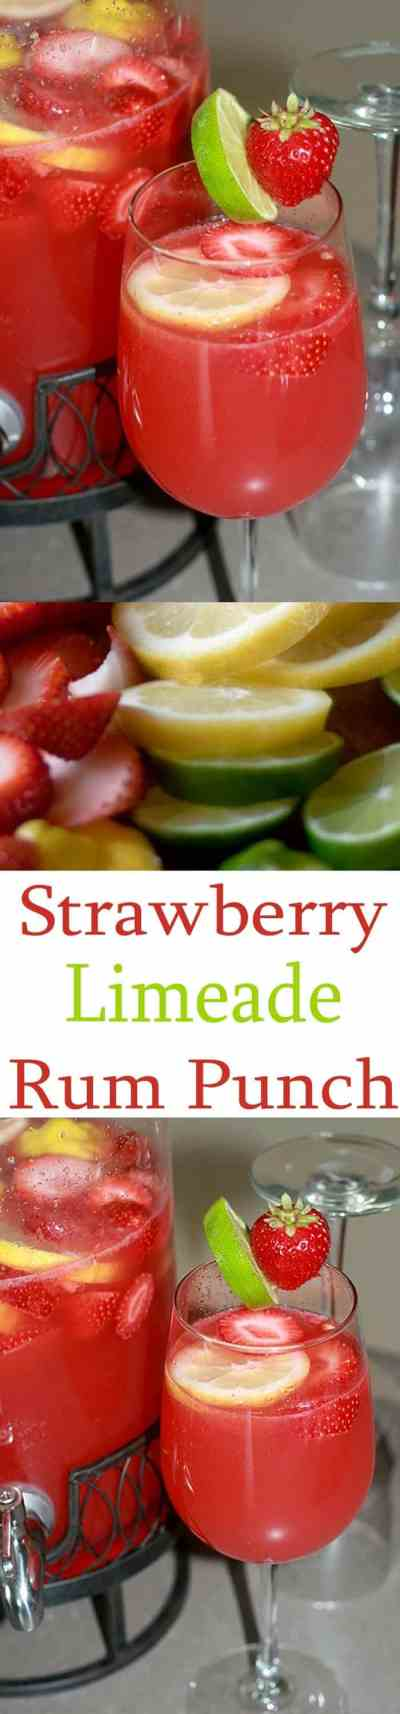 Strawberry Limeade Rum Punch Recipe- All She Cooks